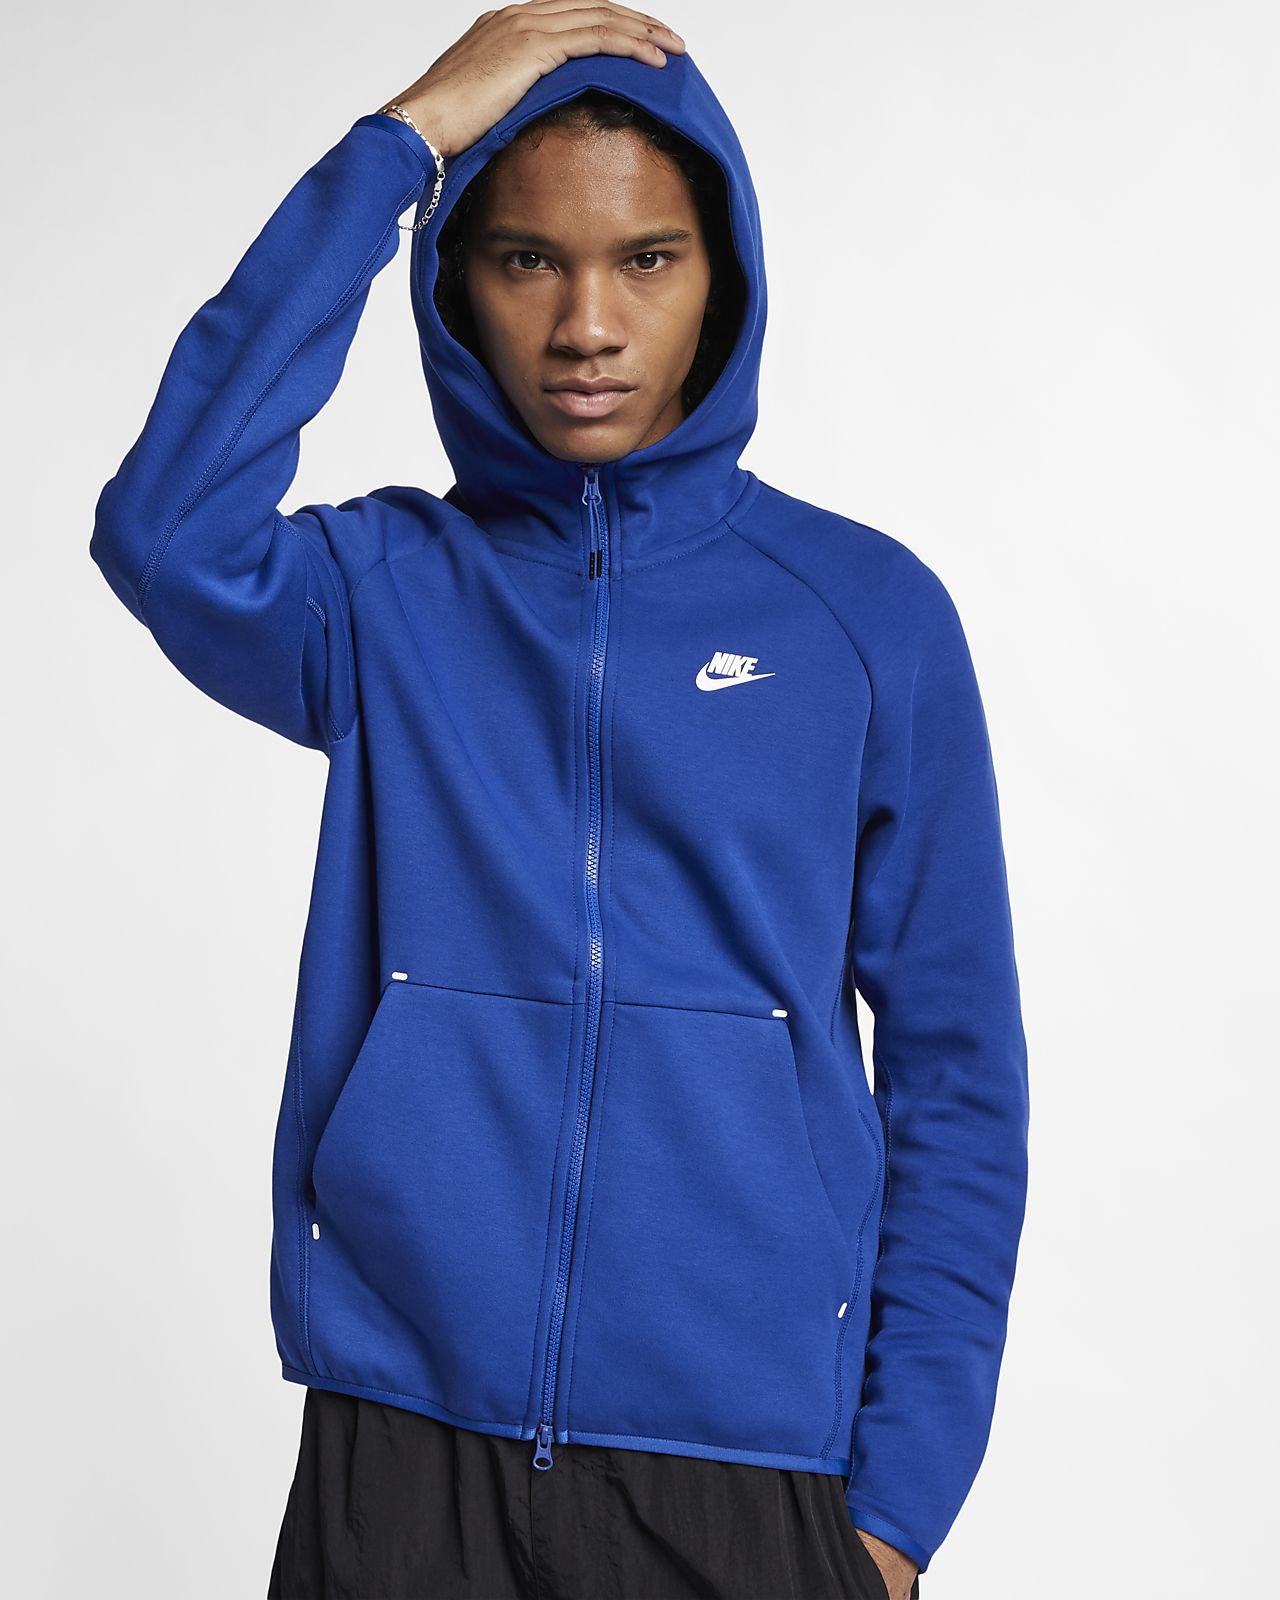 852efeadd Nike Sportswear Tech Fleece Men's Full-Zip Hoodie. Nike.com LU